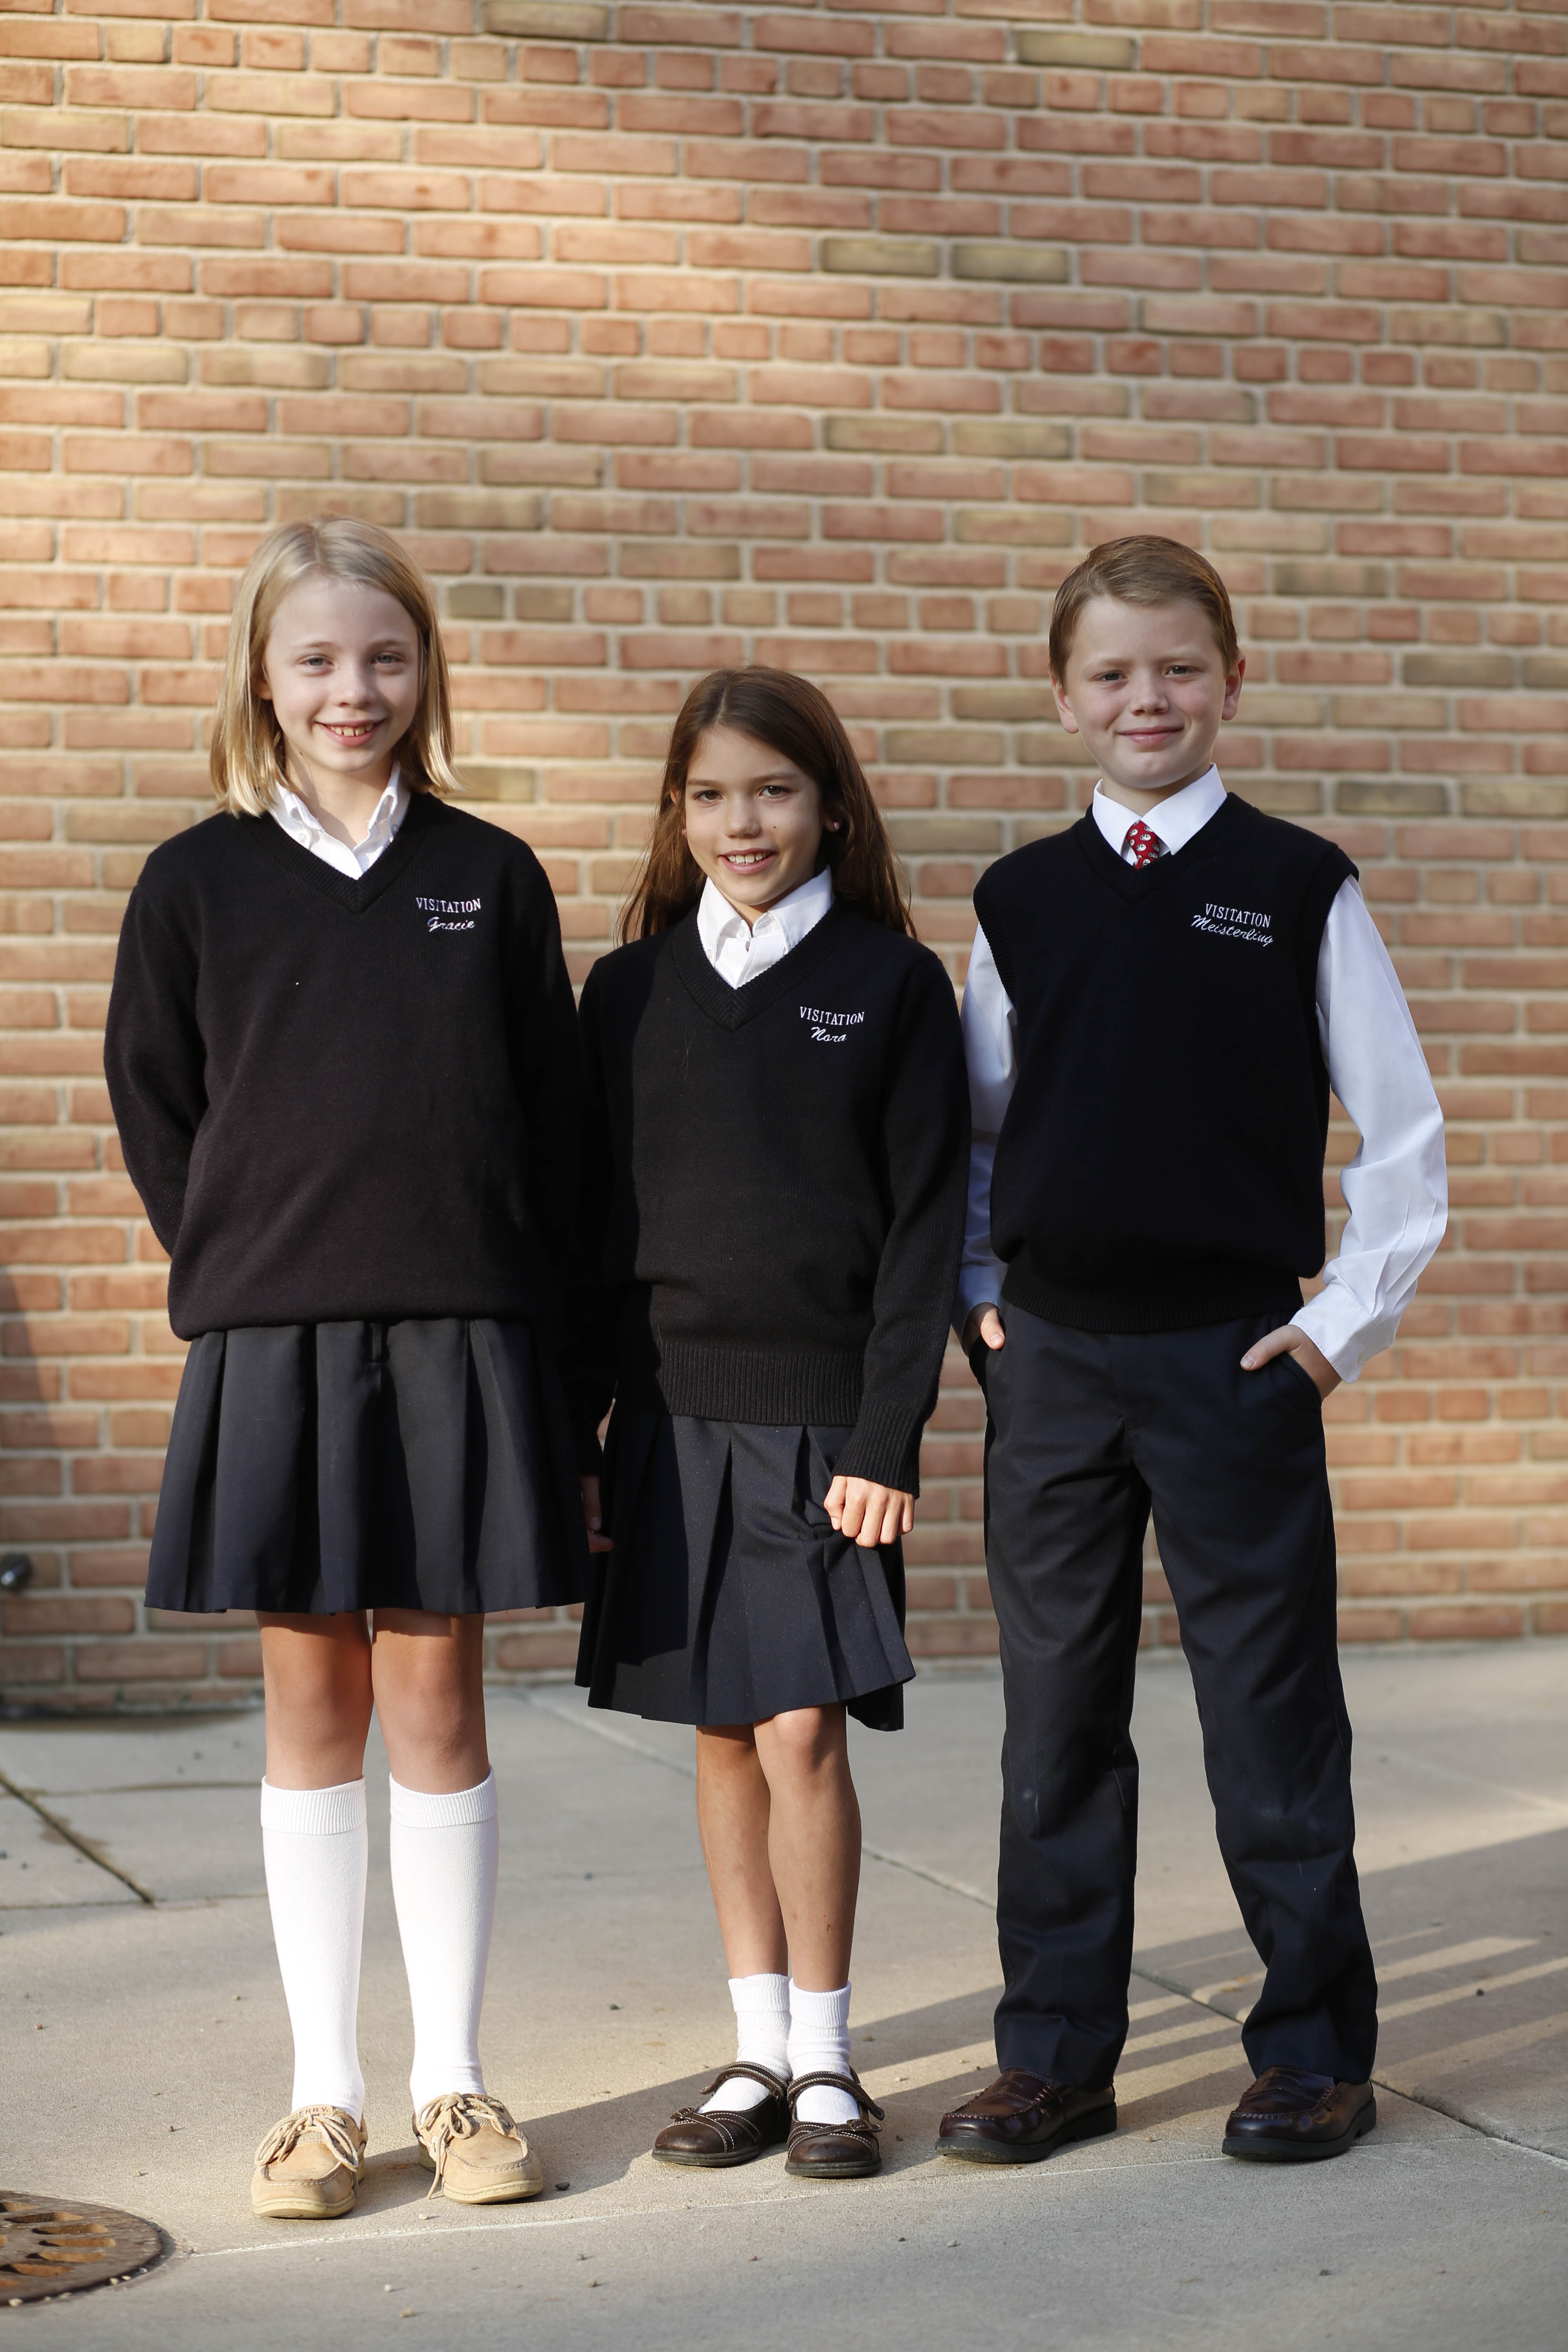 School Uniform Cardigan Knitted Button Down Black Navy School Uniform